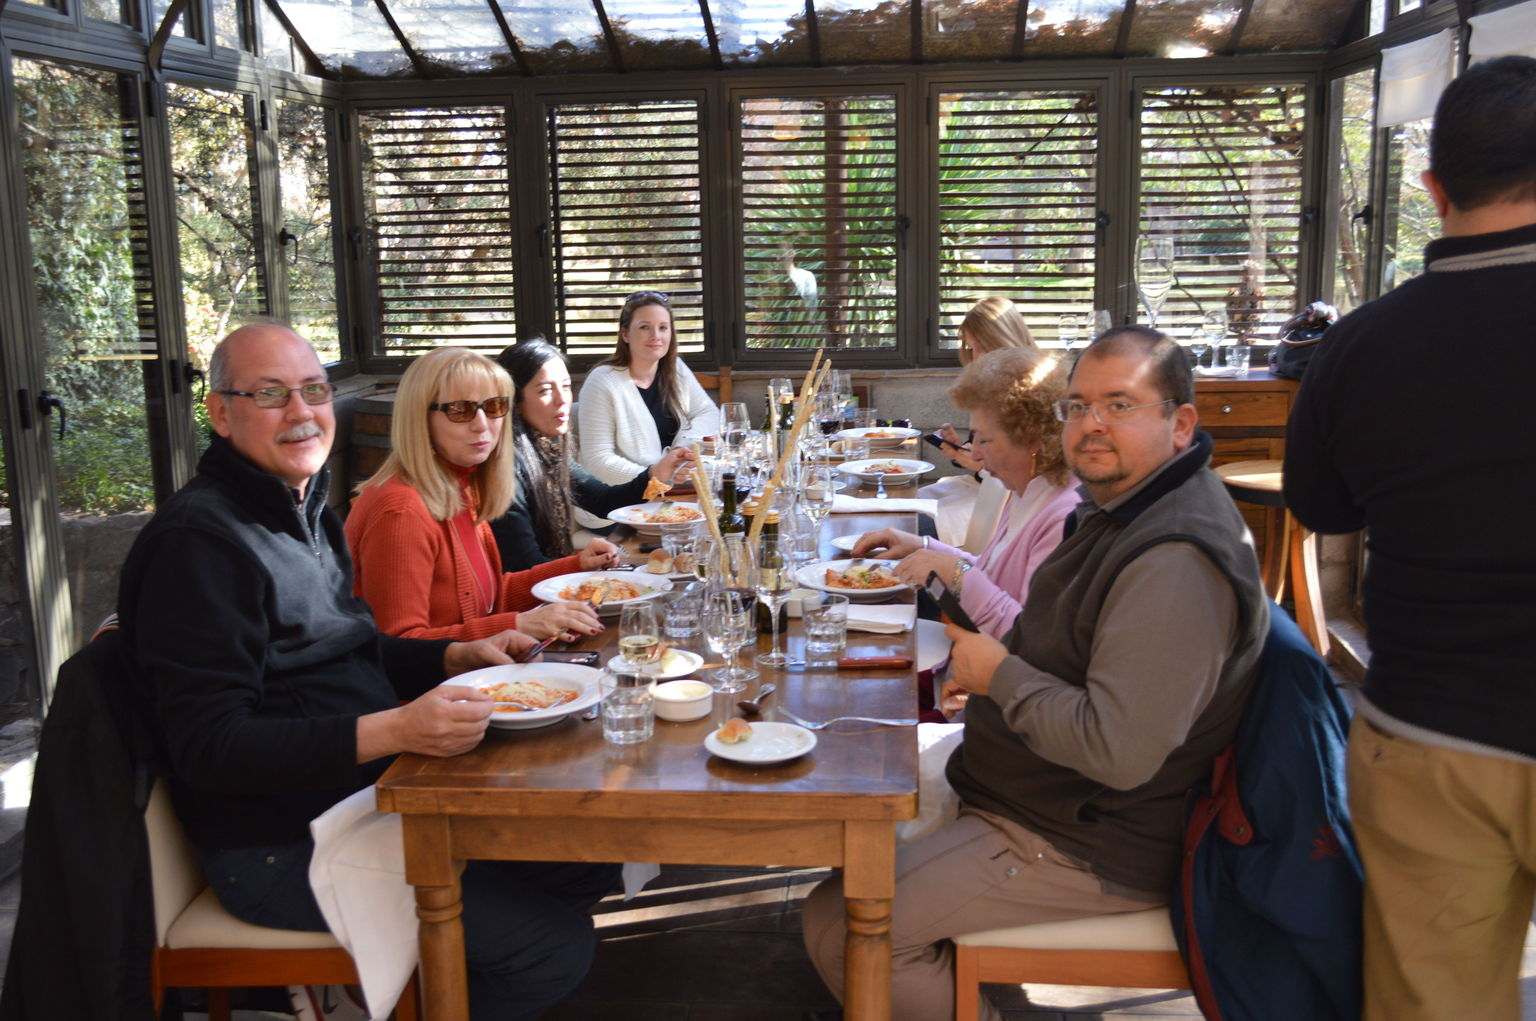 MORE PHOTOS, Wine Tour with Trapiche winery